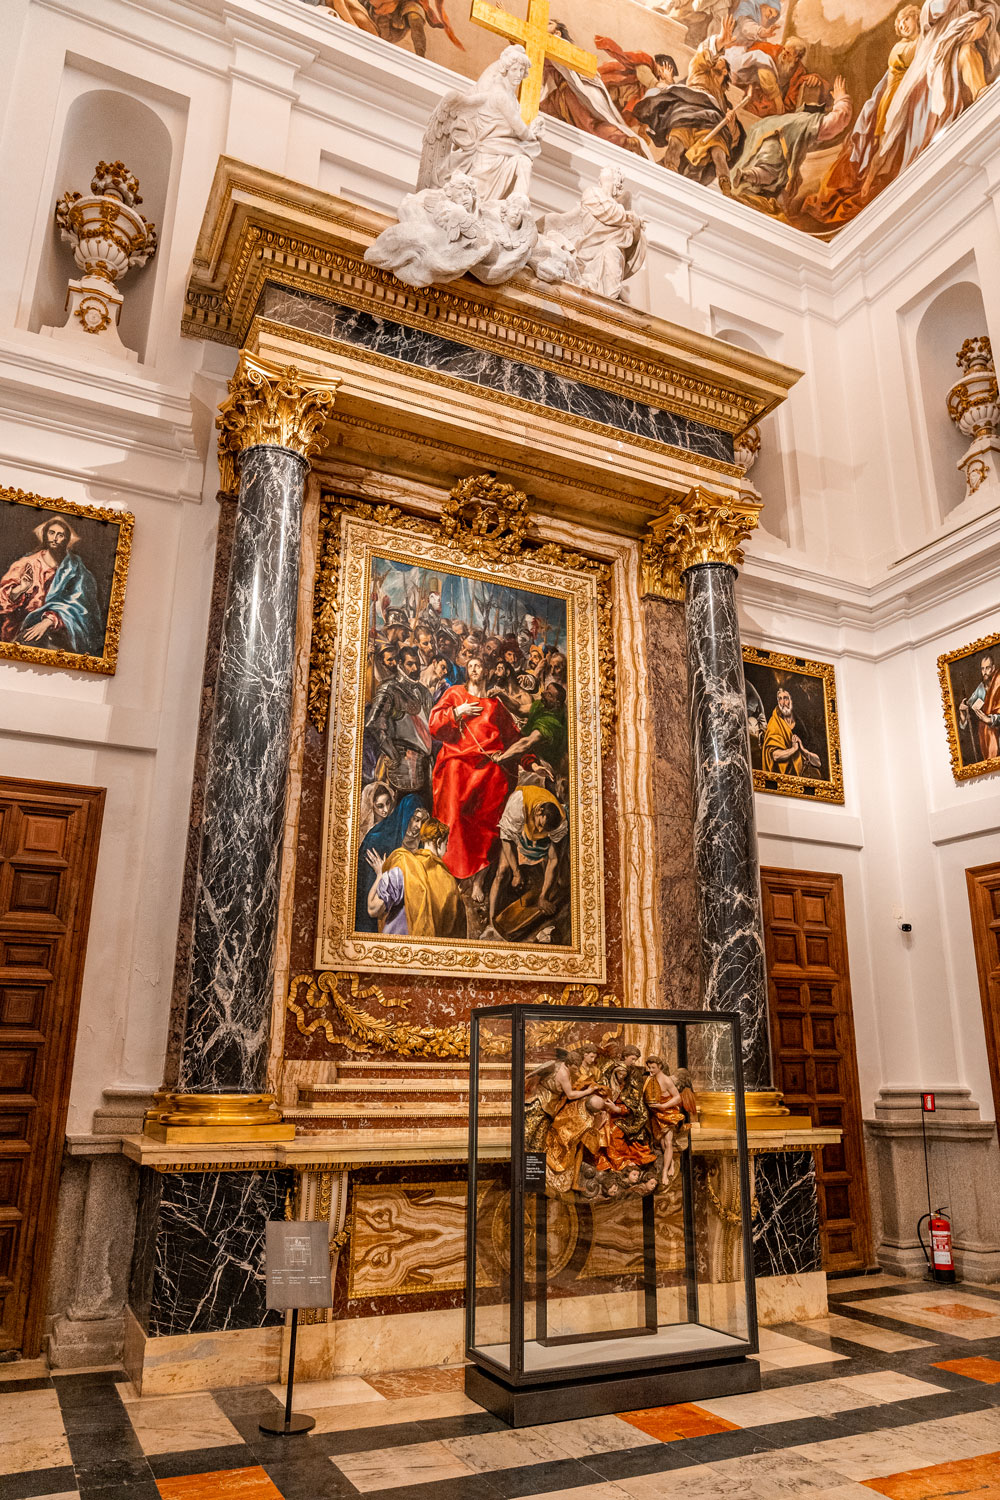 The Disrobing of Christ painting by El Greco at the Toledo Cathedral